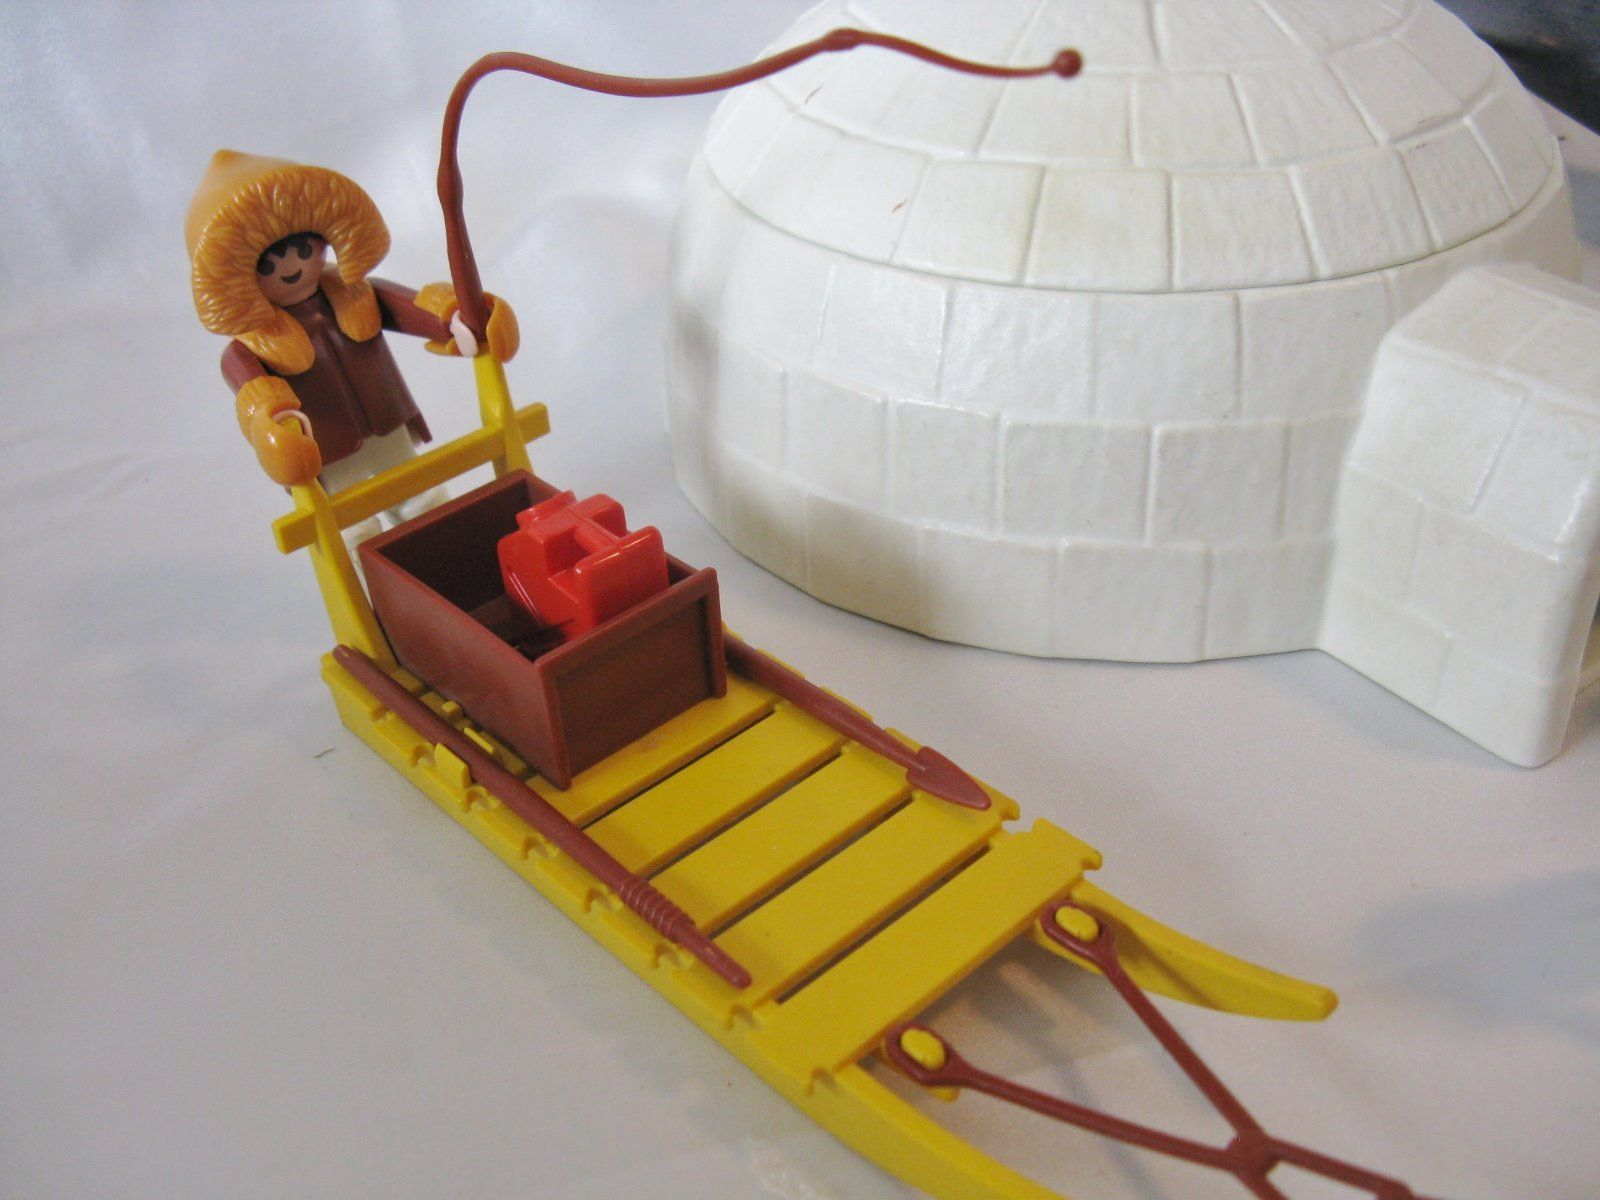 Details about PLAYMOBIL RARE ARCTIC ESKIMO VILLAGE, IGLOO